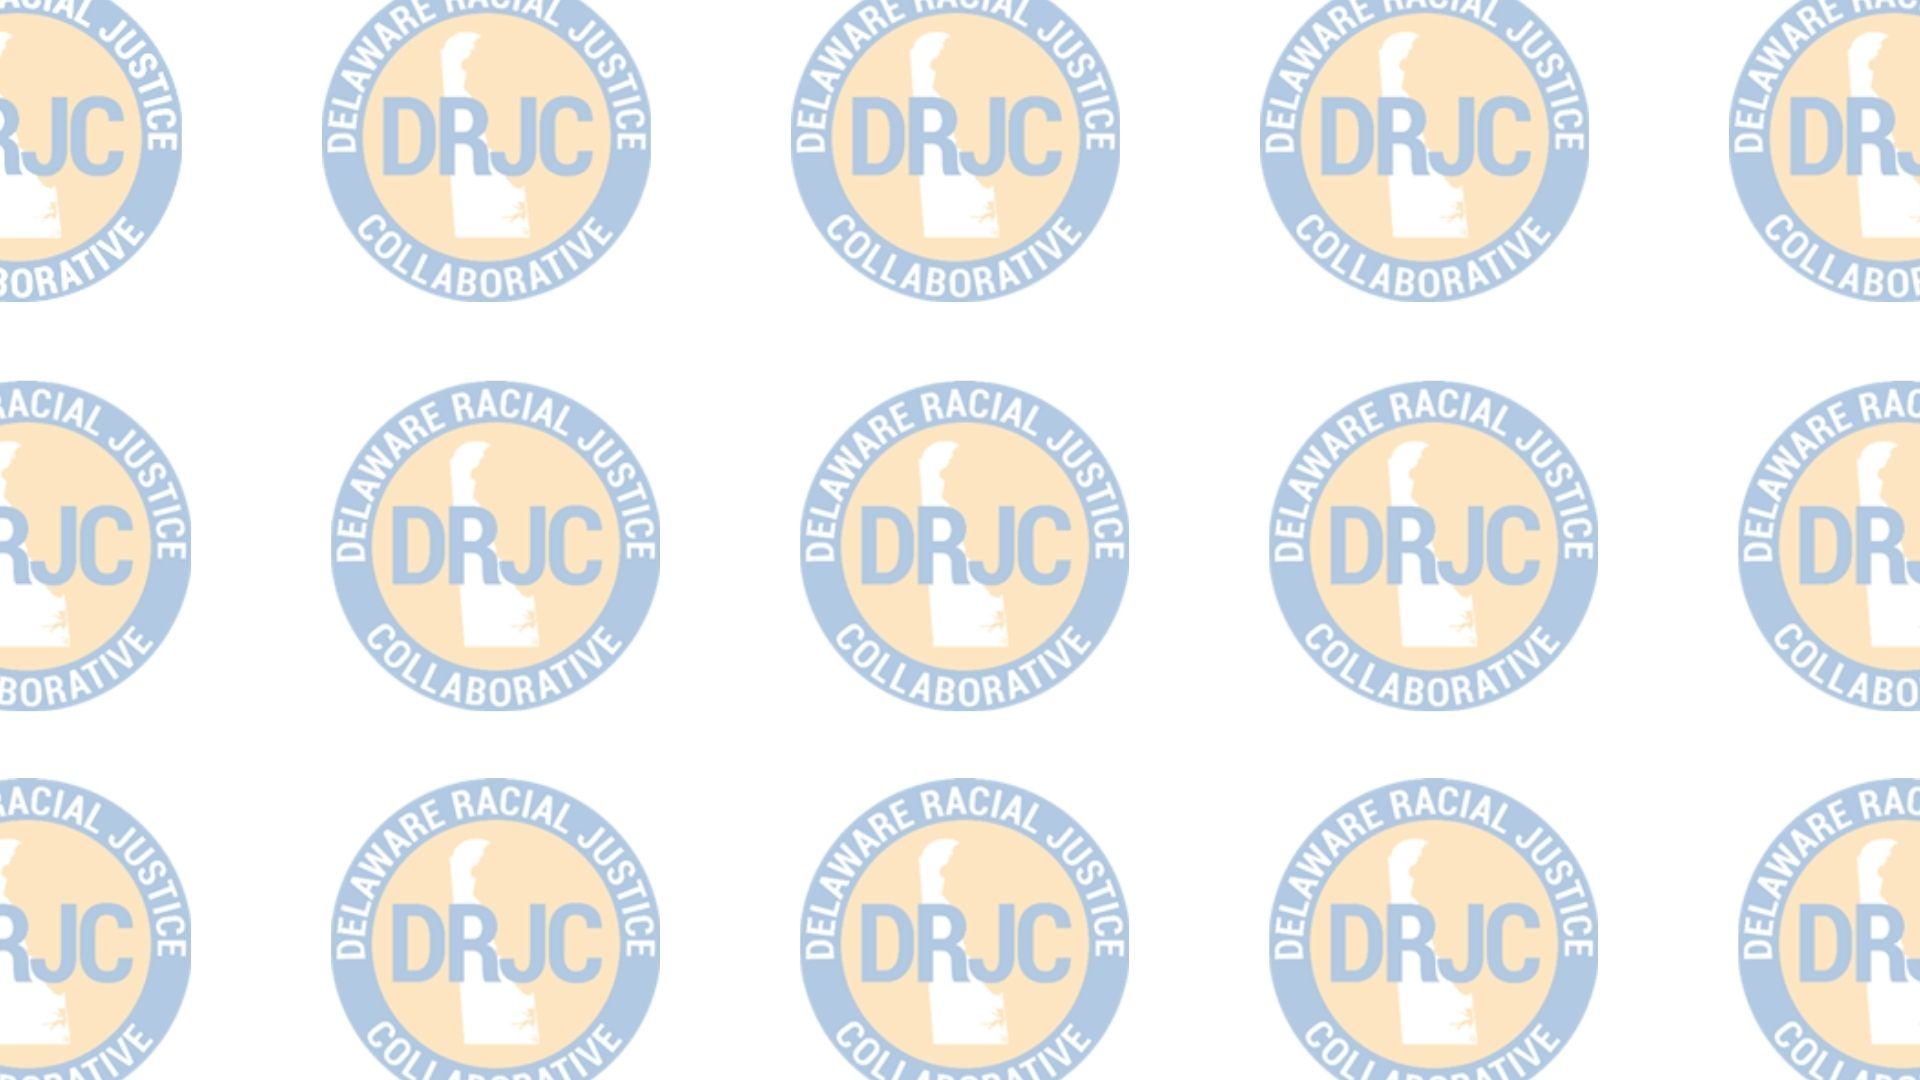 DRJC Real Talk – A Candid Conversation About Racial Equity & Social Justice